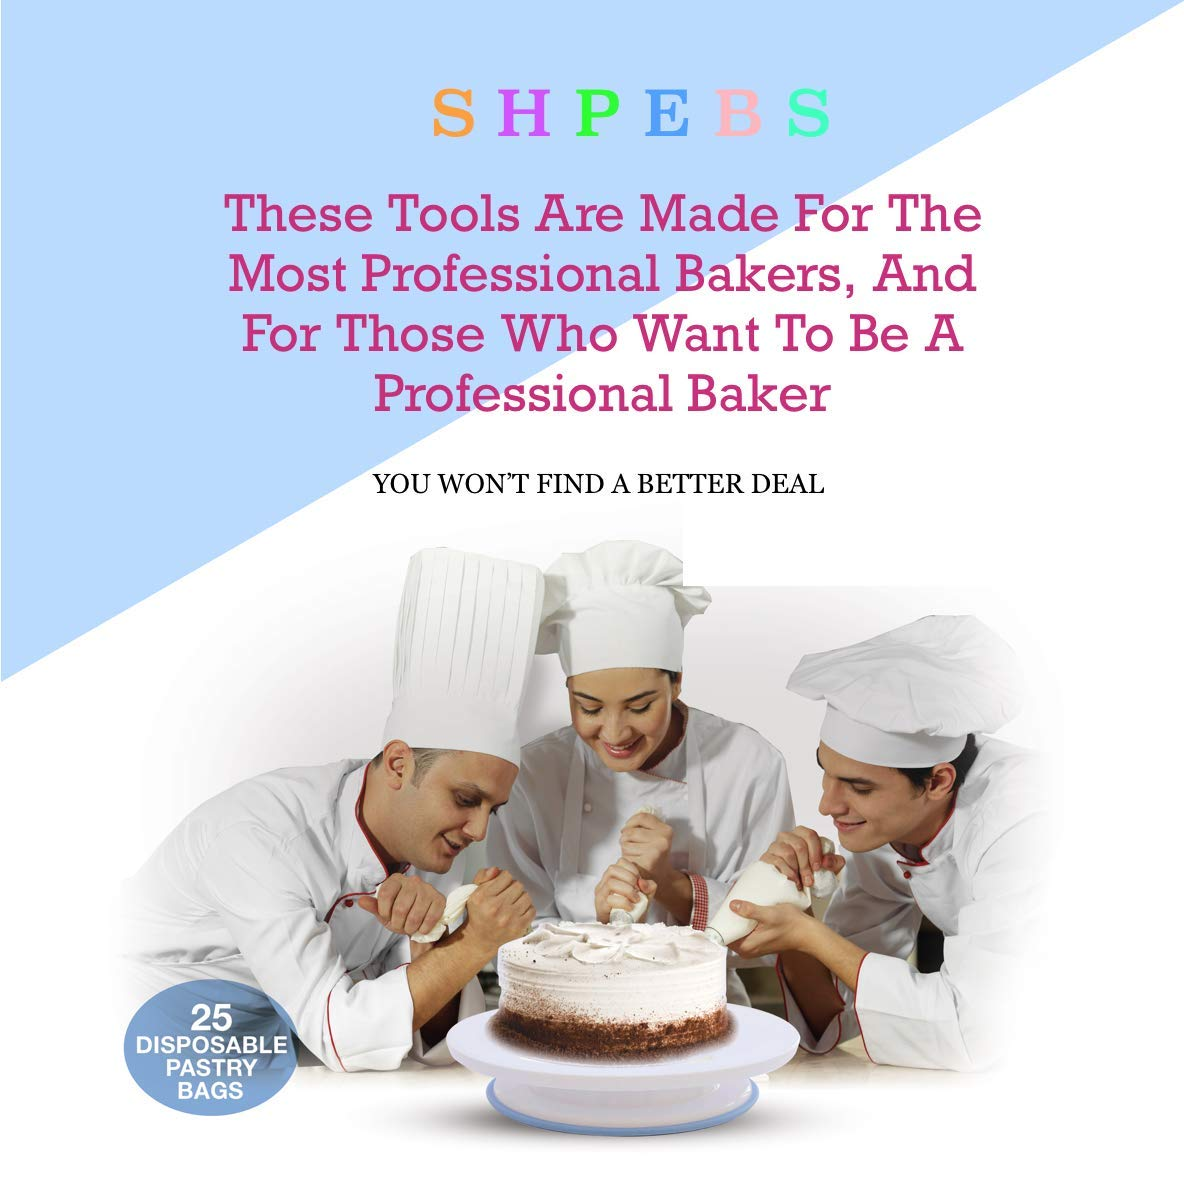 Cake Decorating Supplies For Beginners | Cake Decorating Kit Baking Supplies Set | Rotating Cake Turntable Stand | Icing Piping Tips & Bags | Smoother & Spatulas, Frosting & Pastry Tools. 4 🍪 EXQUISITE BAKING & PASTRY MASTERPIECES! You don't need a white chef's jacket to create divine, decadent, and undeniably delectable cakes, cupcakes, cookies, and other delicious desserts & baked goods. Go all-out with this ultimate kitchen set! Perfect as a Gift for all ages 🍰 ALL-IN-ONE BAKING KIT - Set Includes: | Nonslip Rotating Turntable Stand | 24 Piping Tips | 5 Russian tips | Cleaning Brush | Piping Bags | 2x Tip Coupler | Flower Lifter | 1x Flower Nails | 1x Spatula | 3x Cake Scrapers | 1x Silicone Piping Bags | 25x Disposable Pastry Bags | Icing Design Chart. 🍪 FUN FOR ALL AGES AND SKILL LEVELS - This all in one kit is great for beginners or experienced cake designers. You supply the ingredients and we supply all the tools you will need to inspire your creativity. If you enjoy baking decorating, the possibilities are endless with this complete set! All tools & accessories are 100% dishwasher safe.